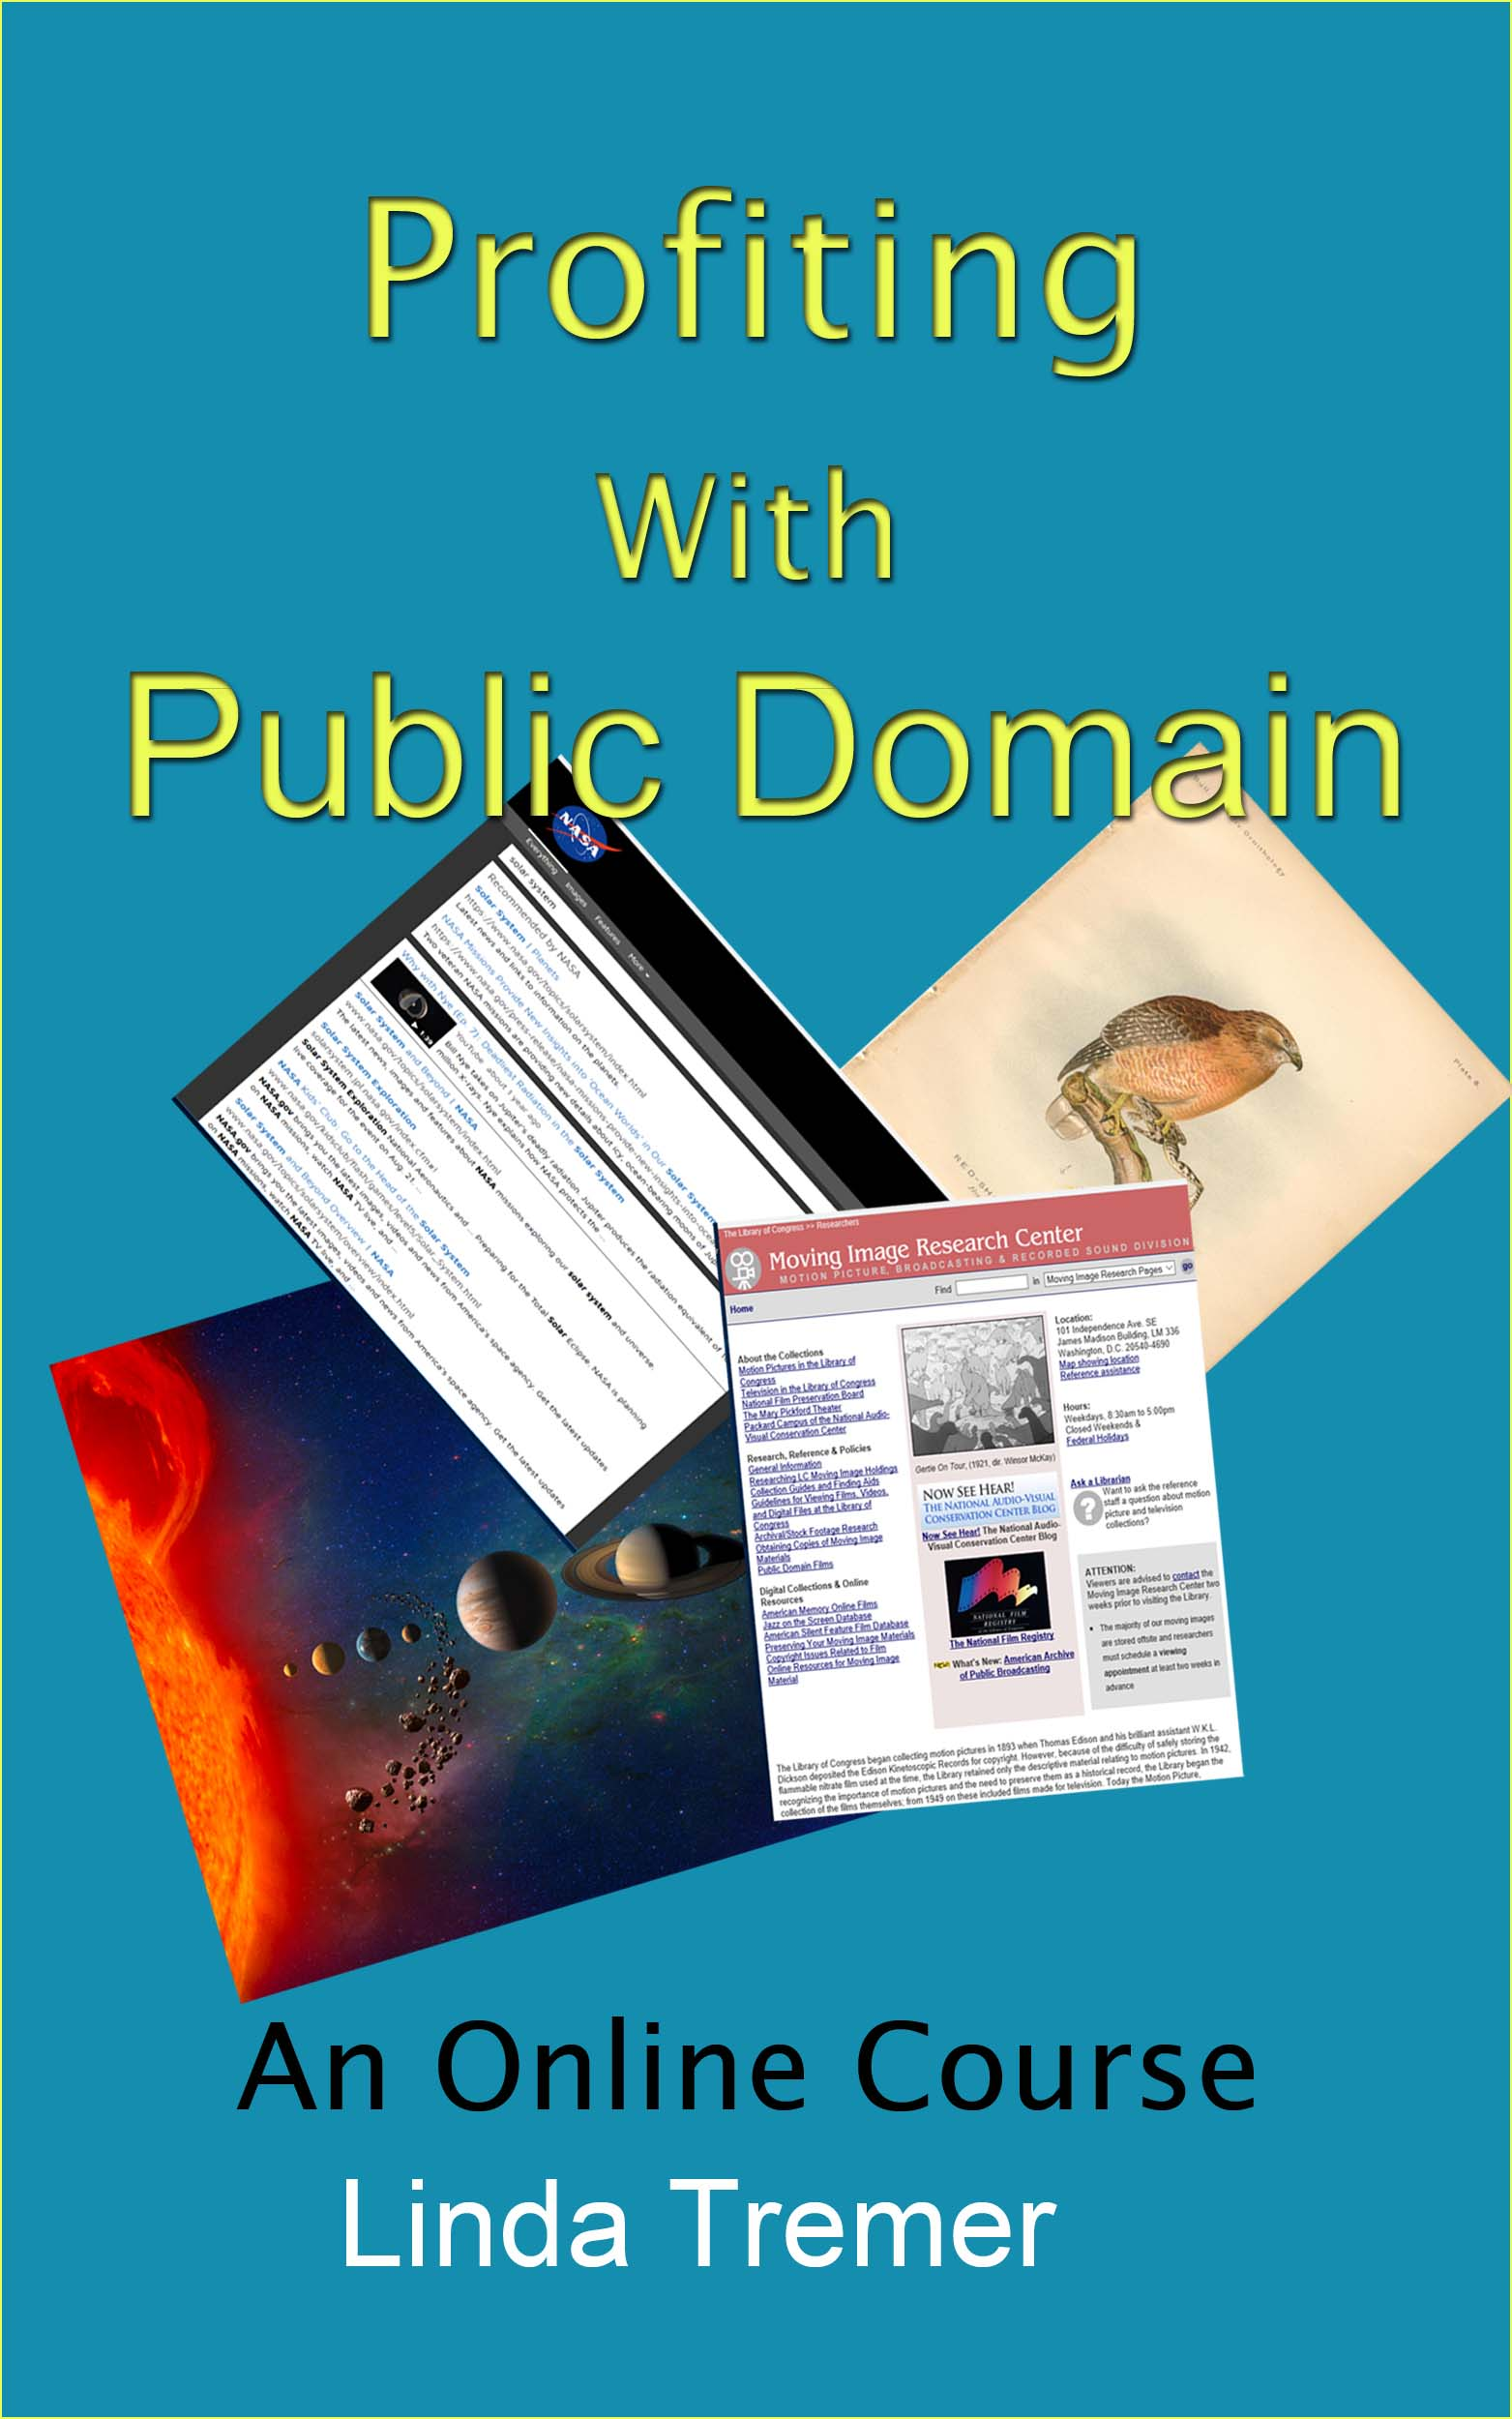 Profiting With Public Domain - Discover the Secrets to Making Money With  Public Domain.(Online Course) [Online Code] by Linda Tremer